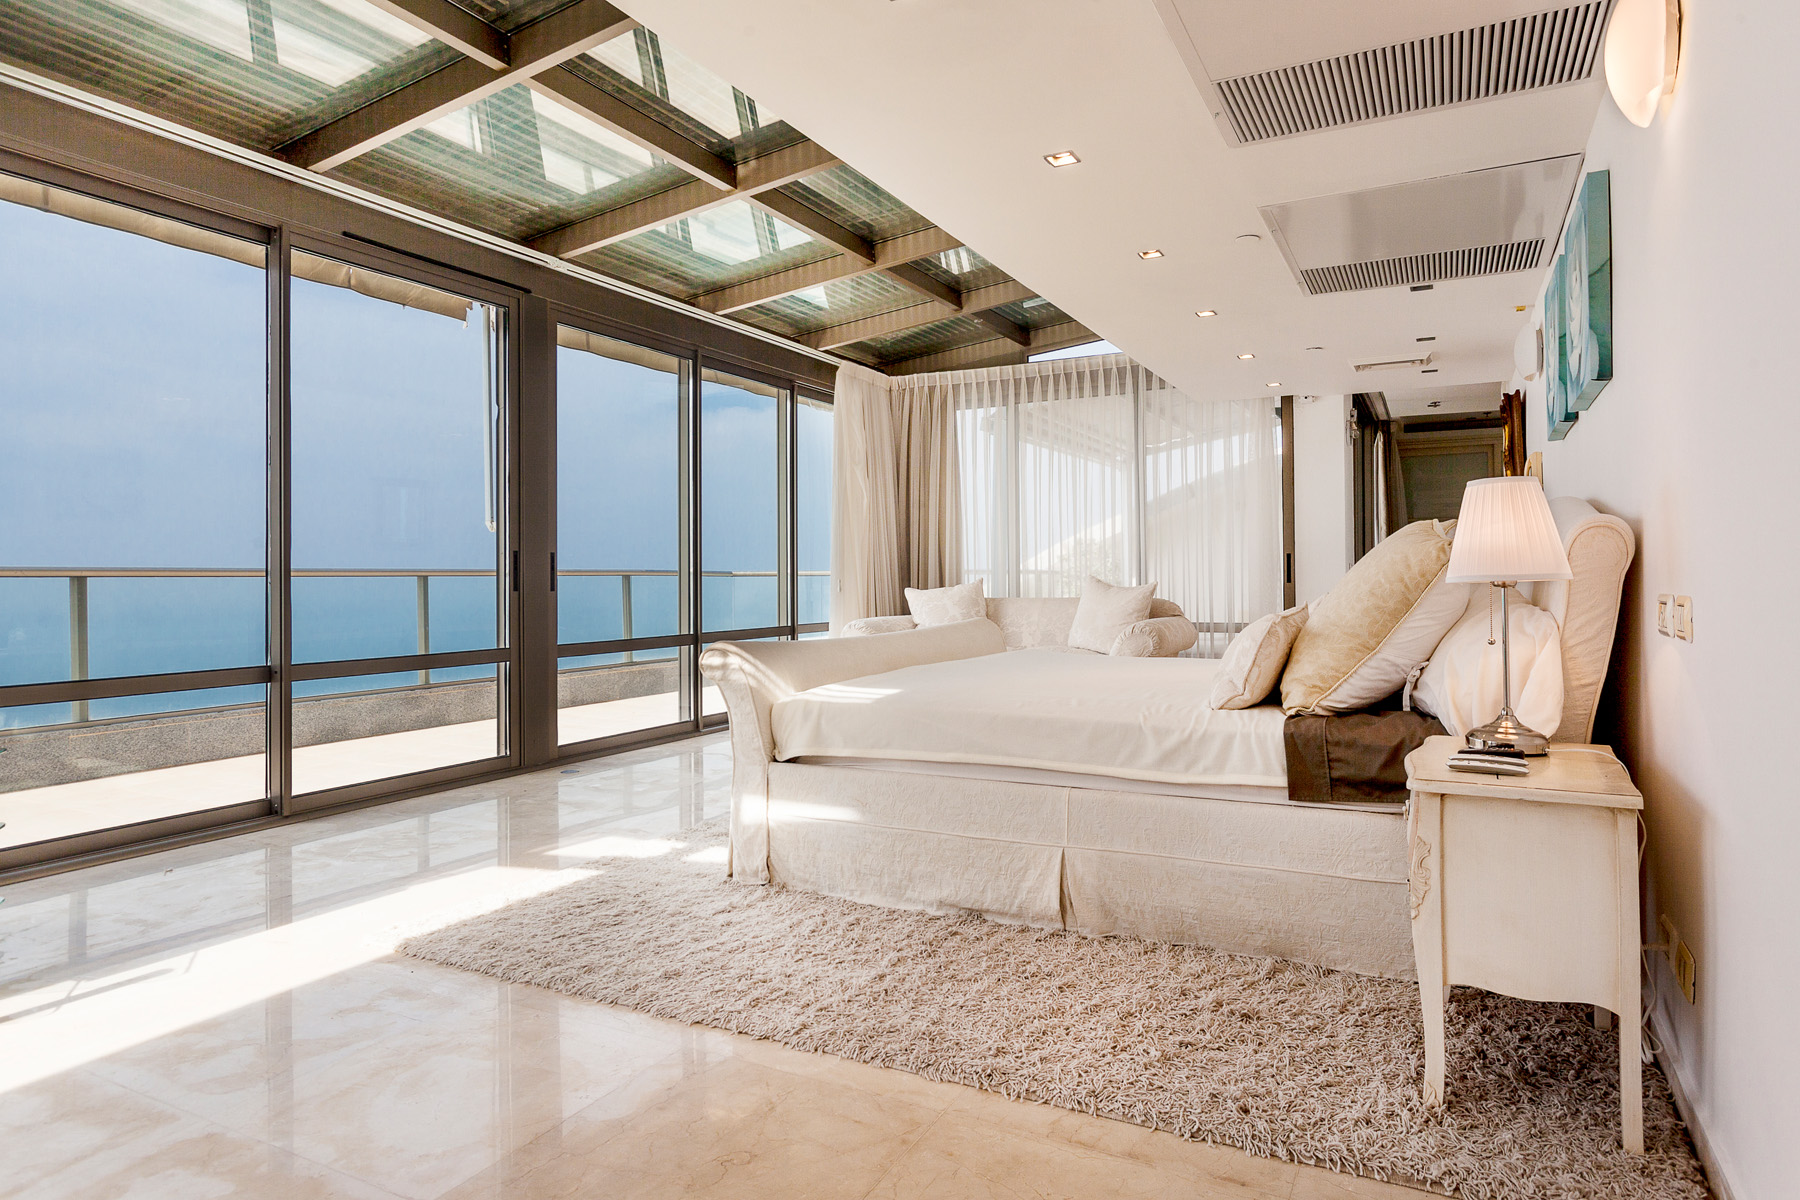 Additional photo for property listing at Refined Seafront Duplex Apartment in Netanya Netanya, Israel Israël